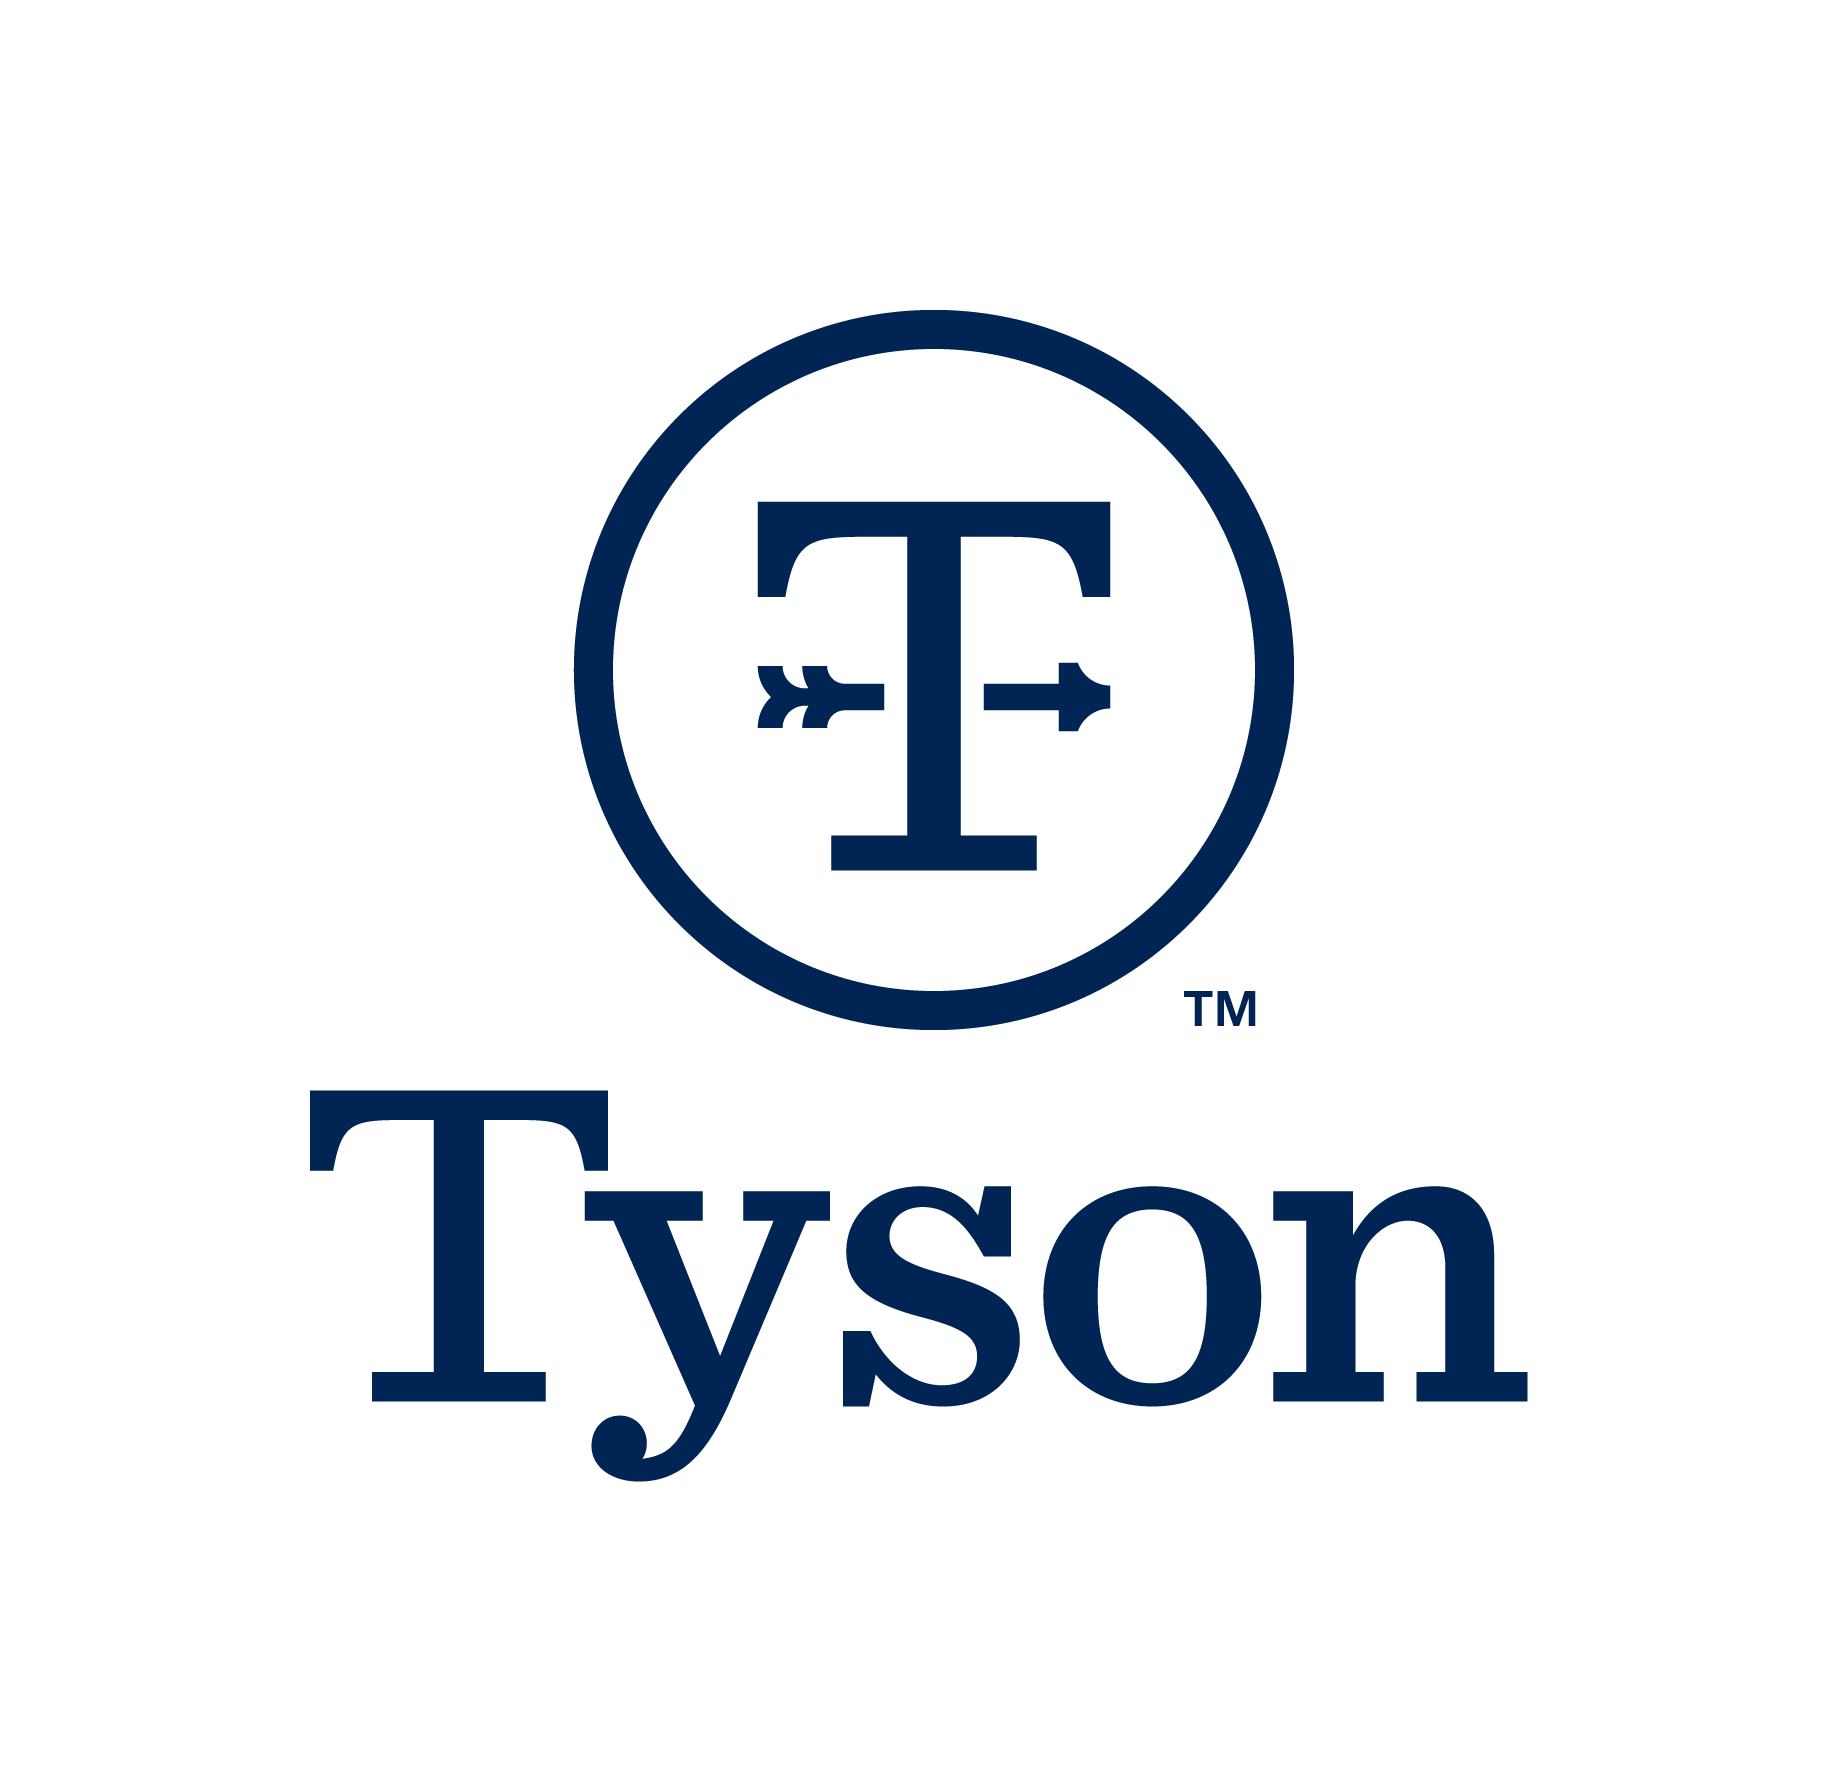 Burrell Behavioral Health, Tyson partner to provide free counseling services for Northwest Arkansas youth